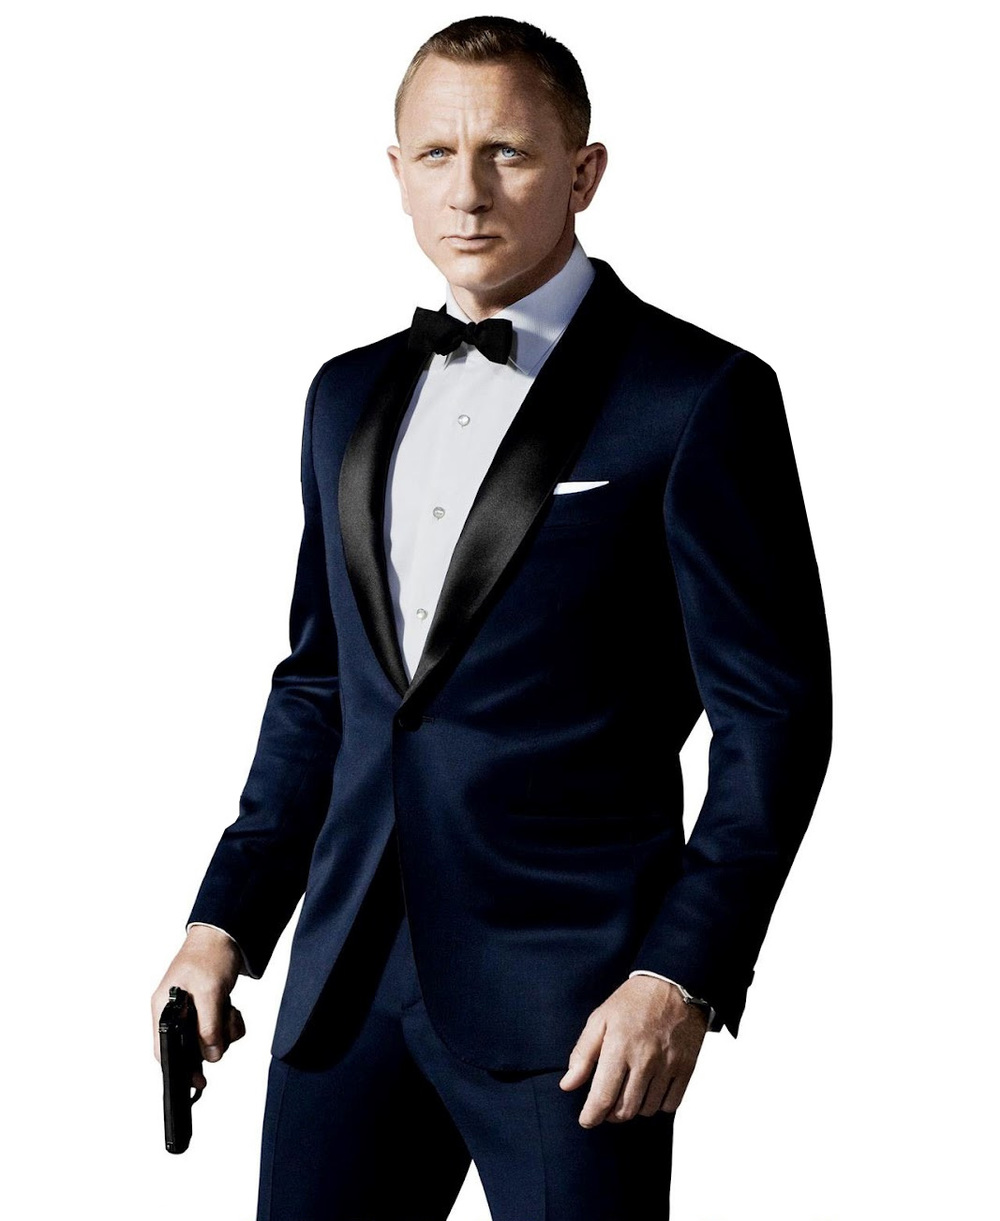 james-bond-skyfall-dark-blue-tuxedo.jpg